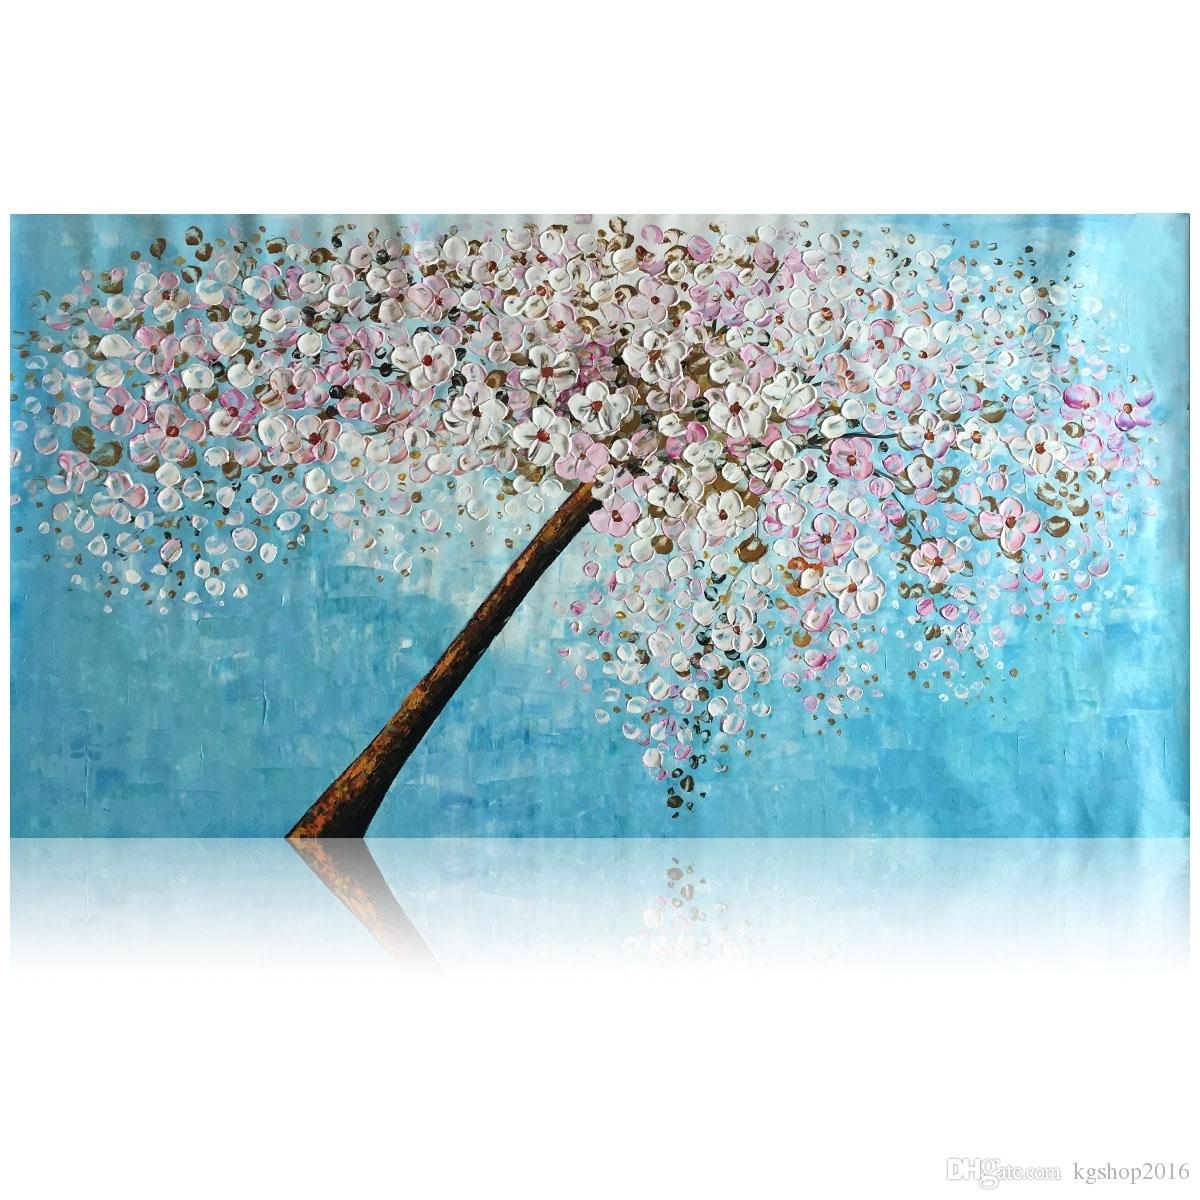 2018 Kgtech Thick Textured Acrylic Paintings 3d Floral Wall Art In Most Current Floral Wall Art (View 3 of 20)